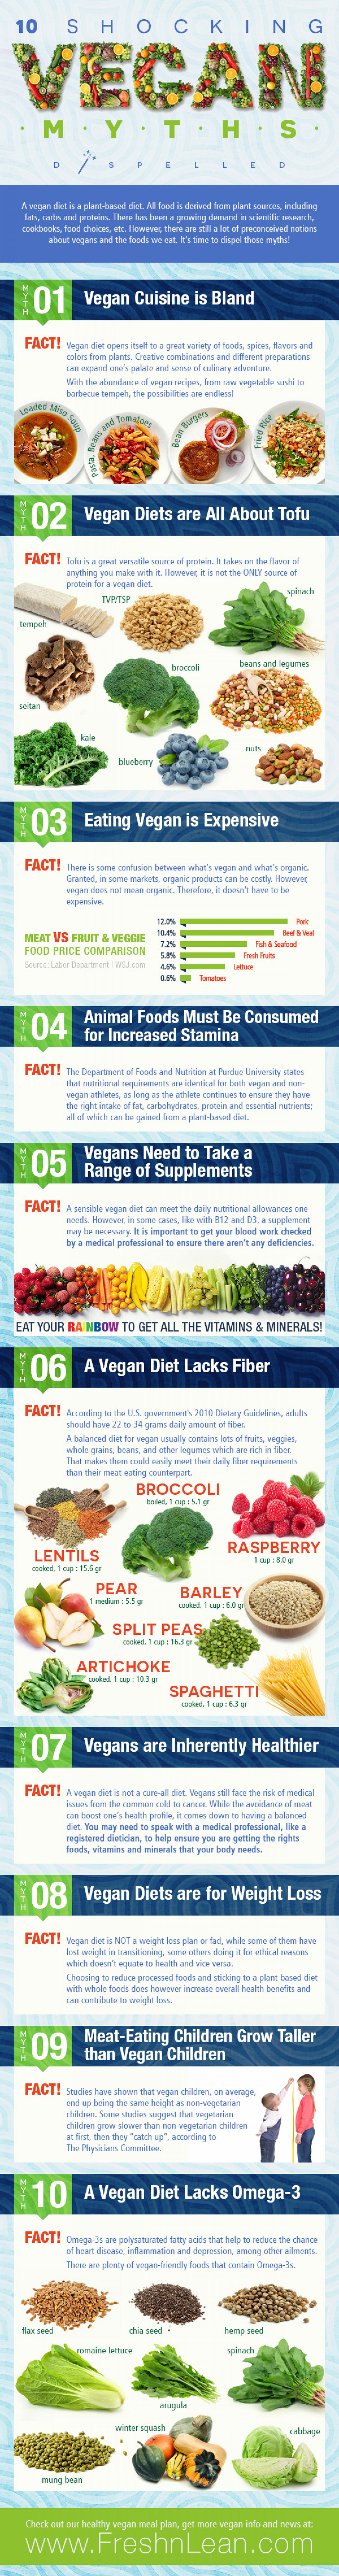 10 Shocking Vegan Myths Dispelled Infographic